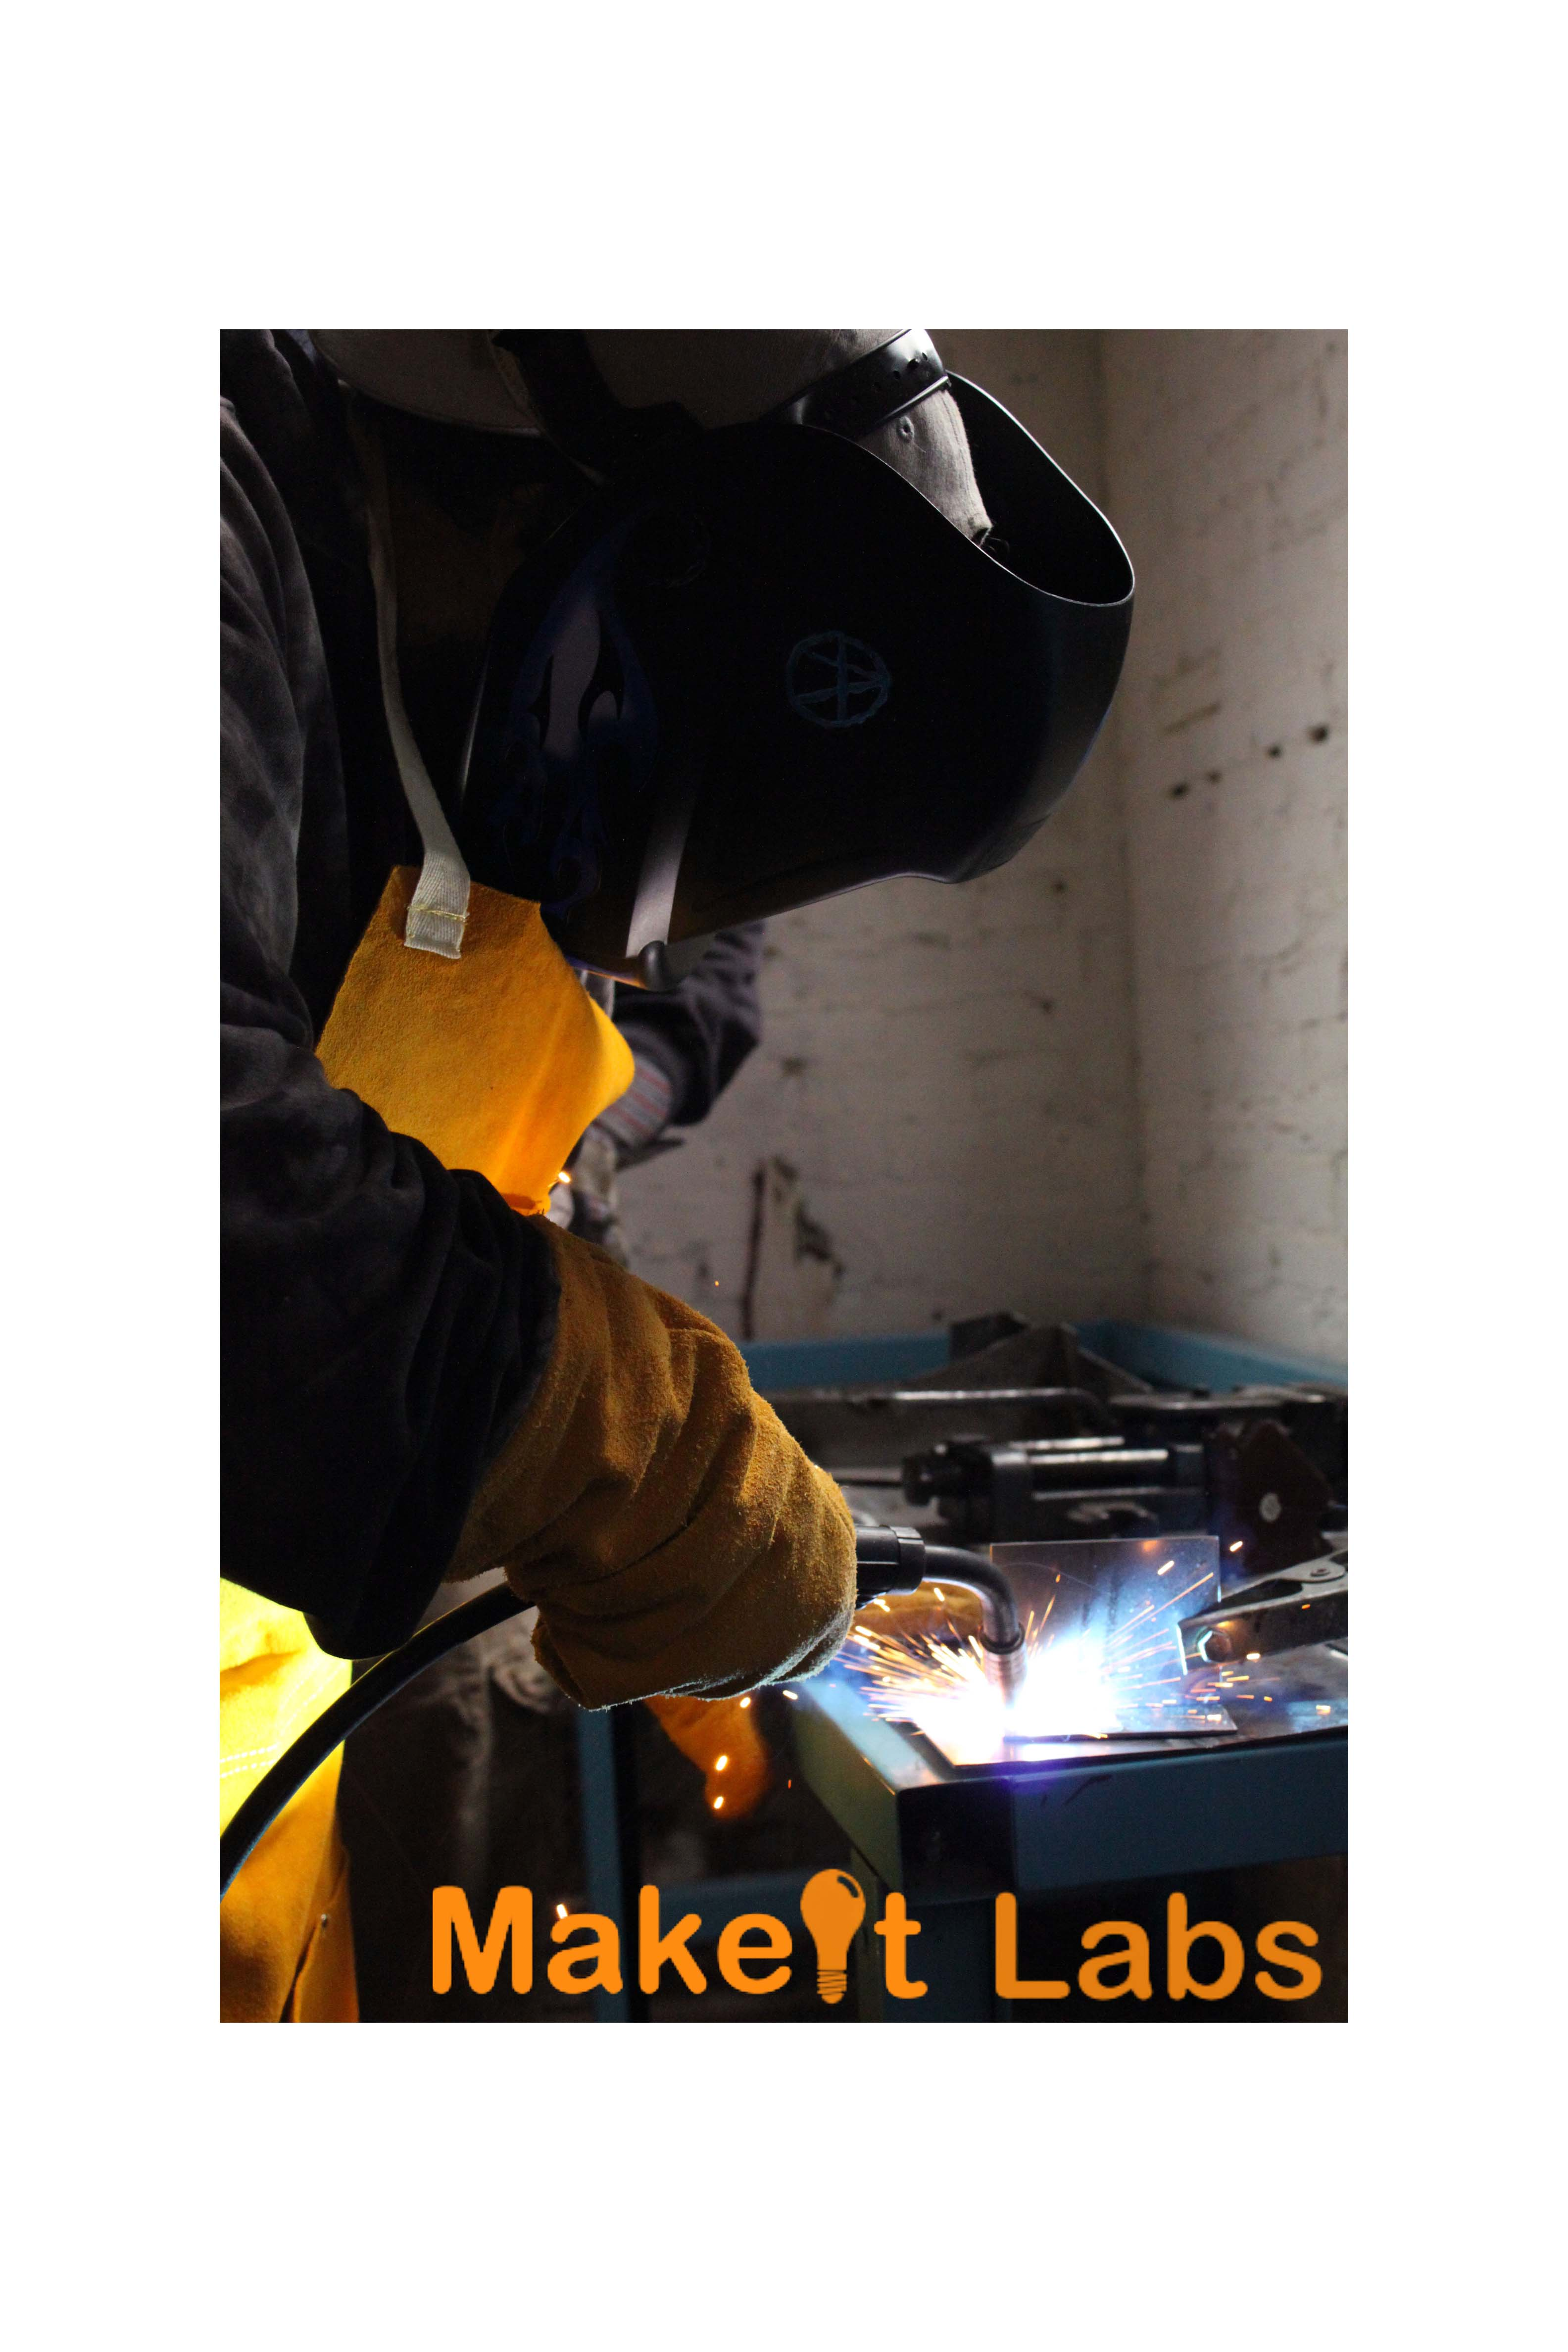 Makeitlabs Welding Student From March 2012